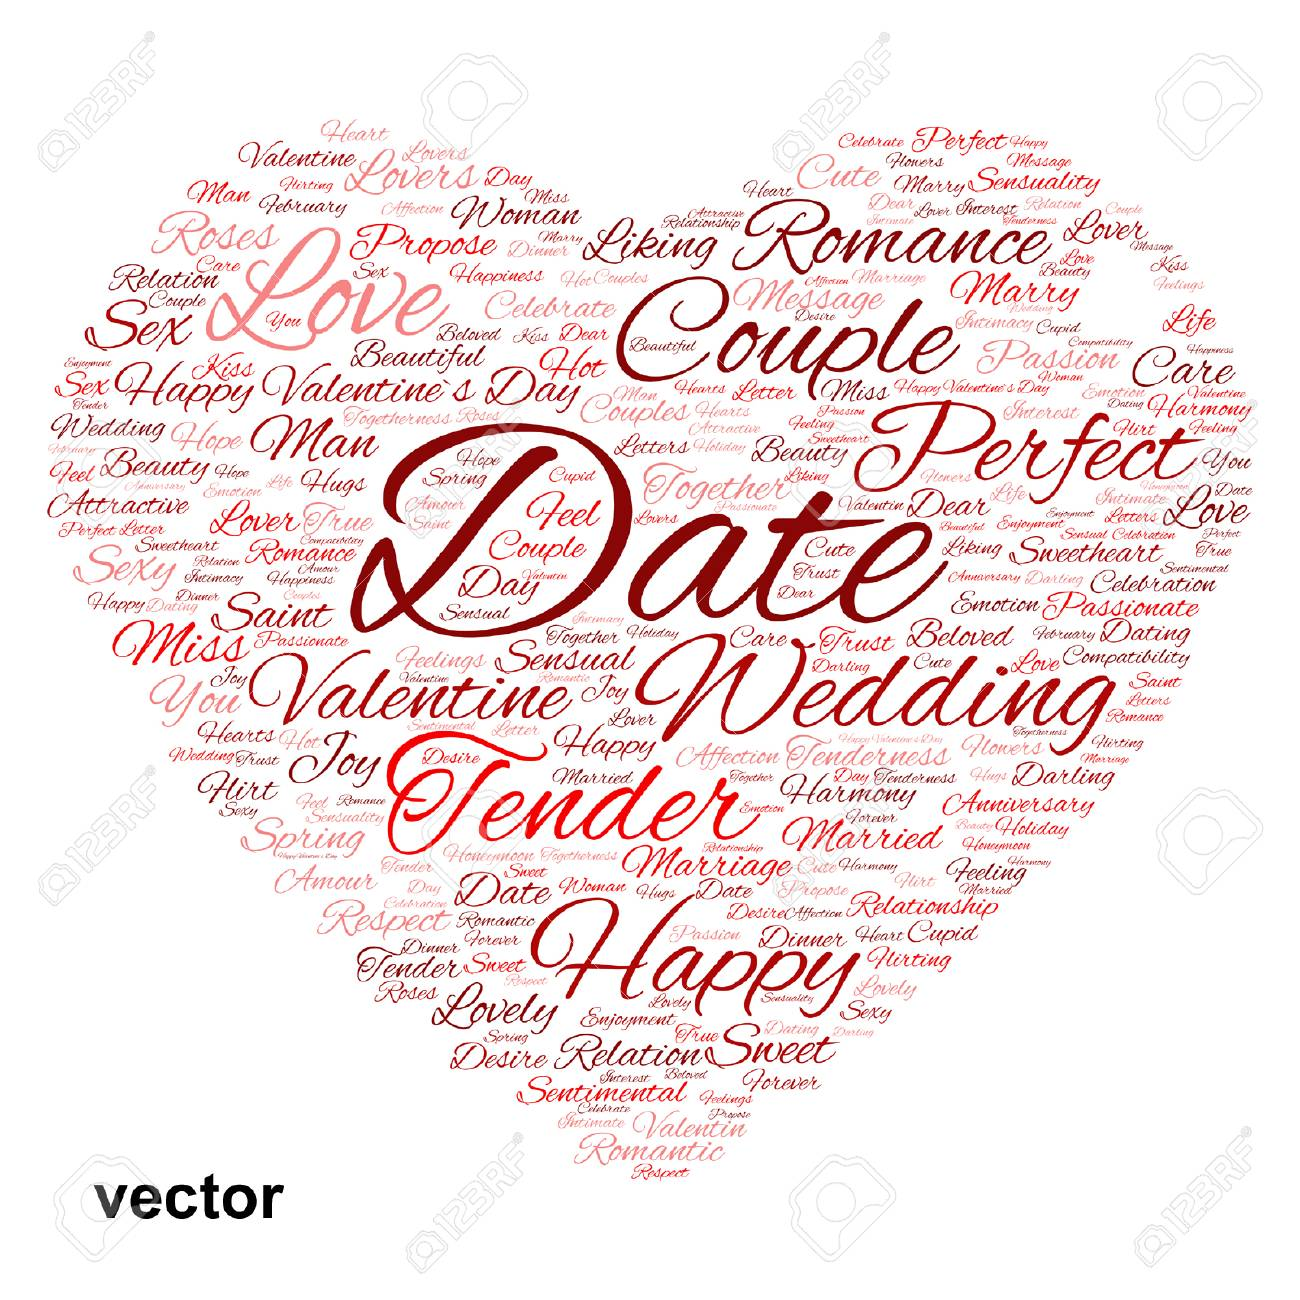 Conceptual Love Or Valentine Heart Shape Word Cloud Isoalted On White Stock Vector